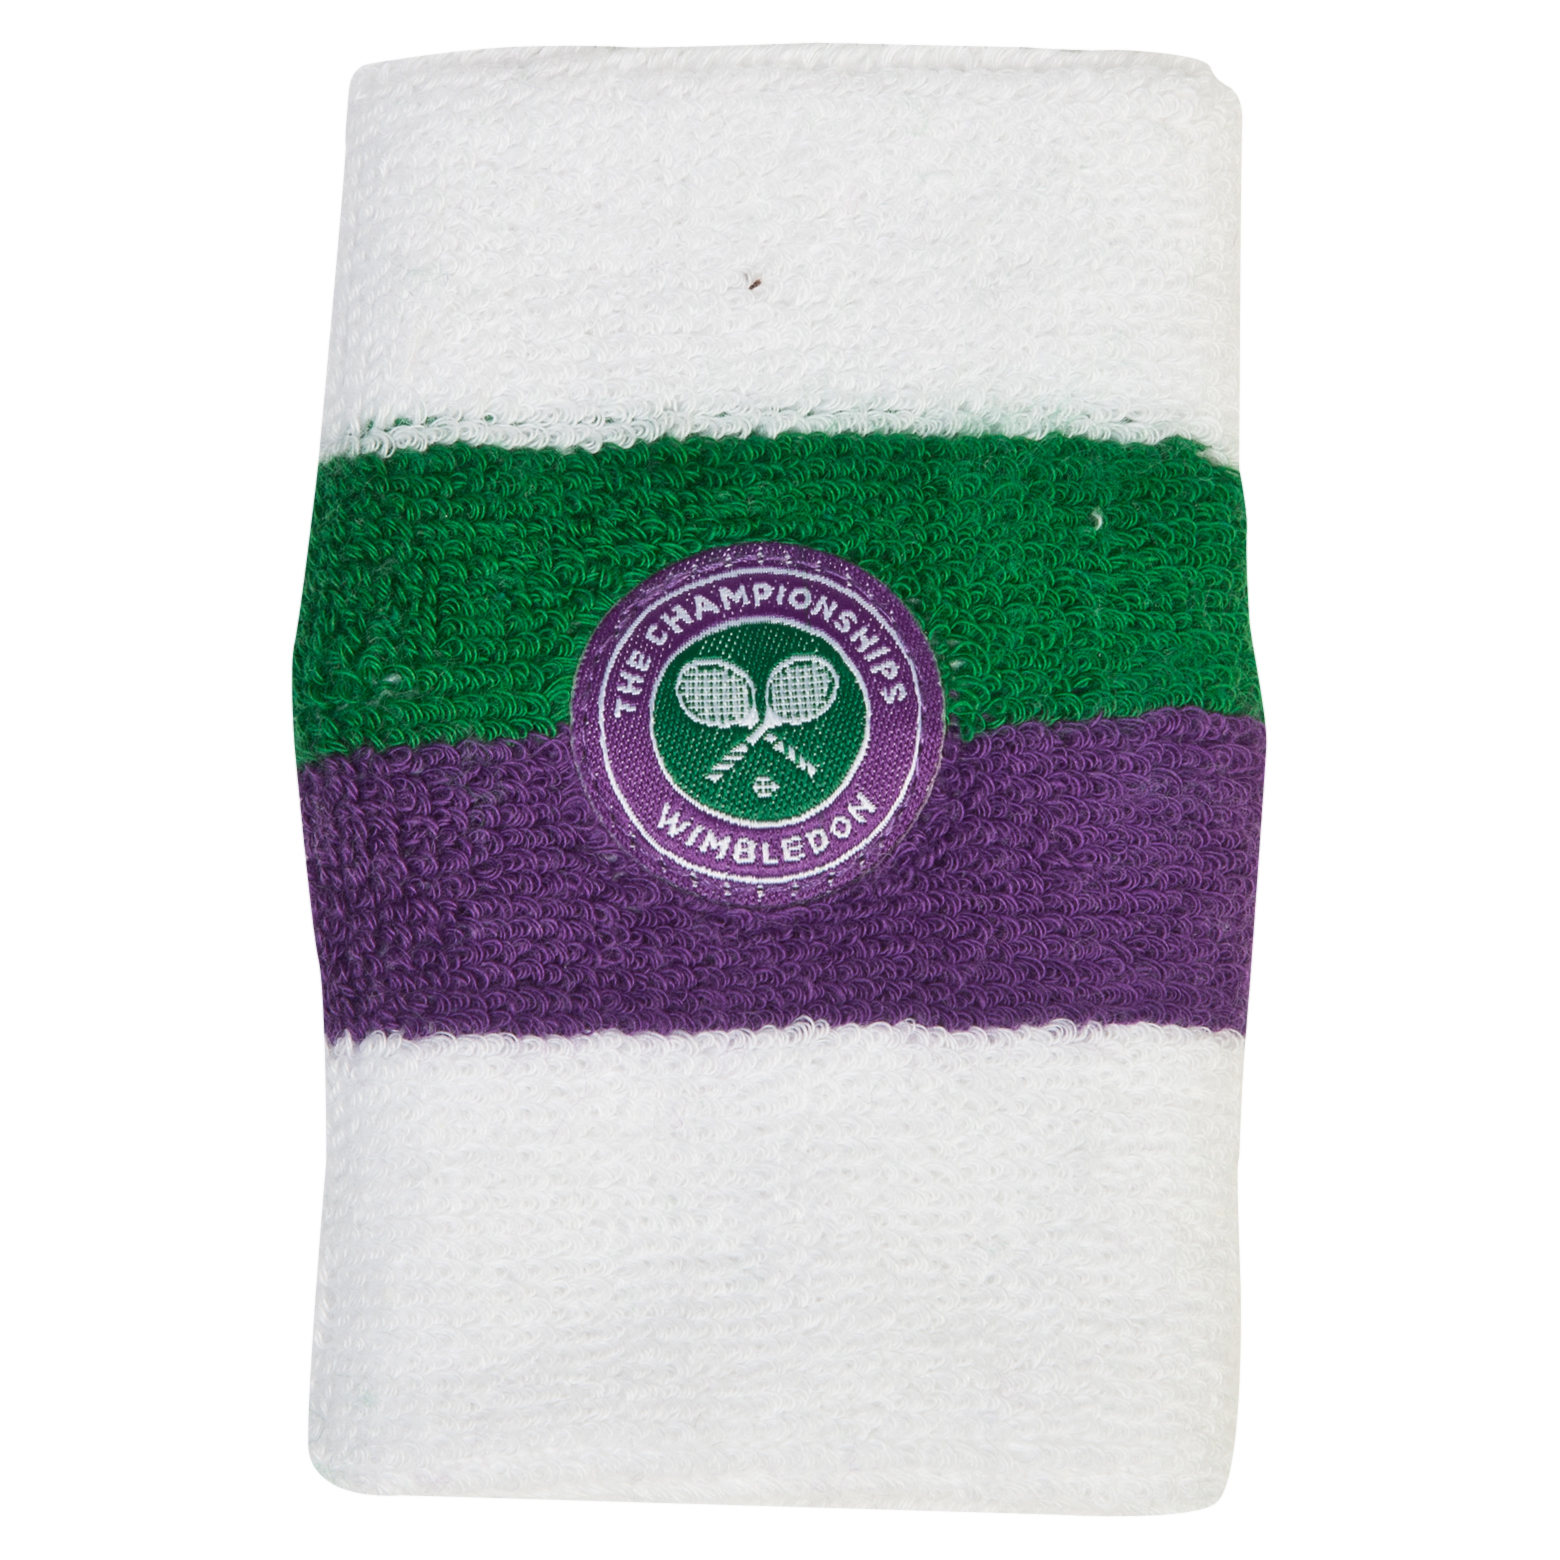 Wimbledon Jumbo Wristband - Green/Purple